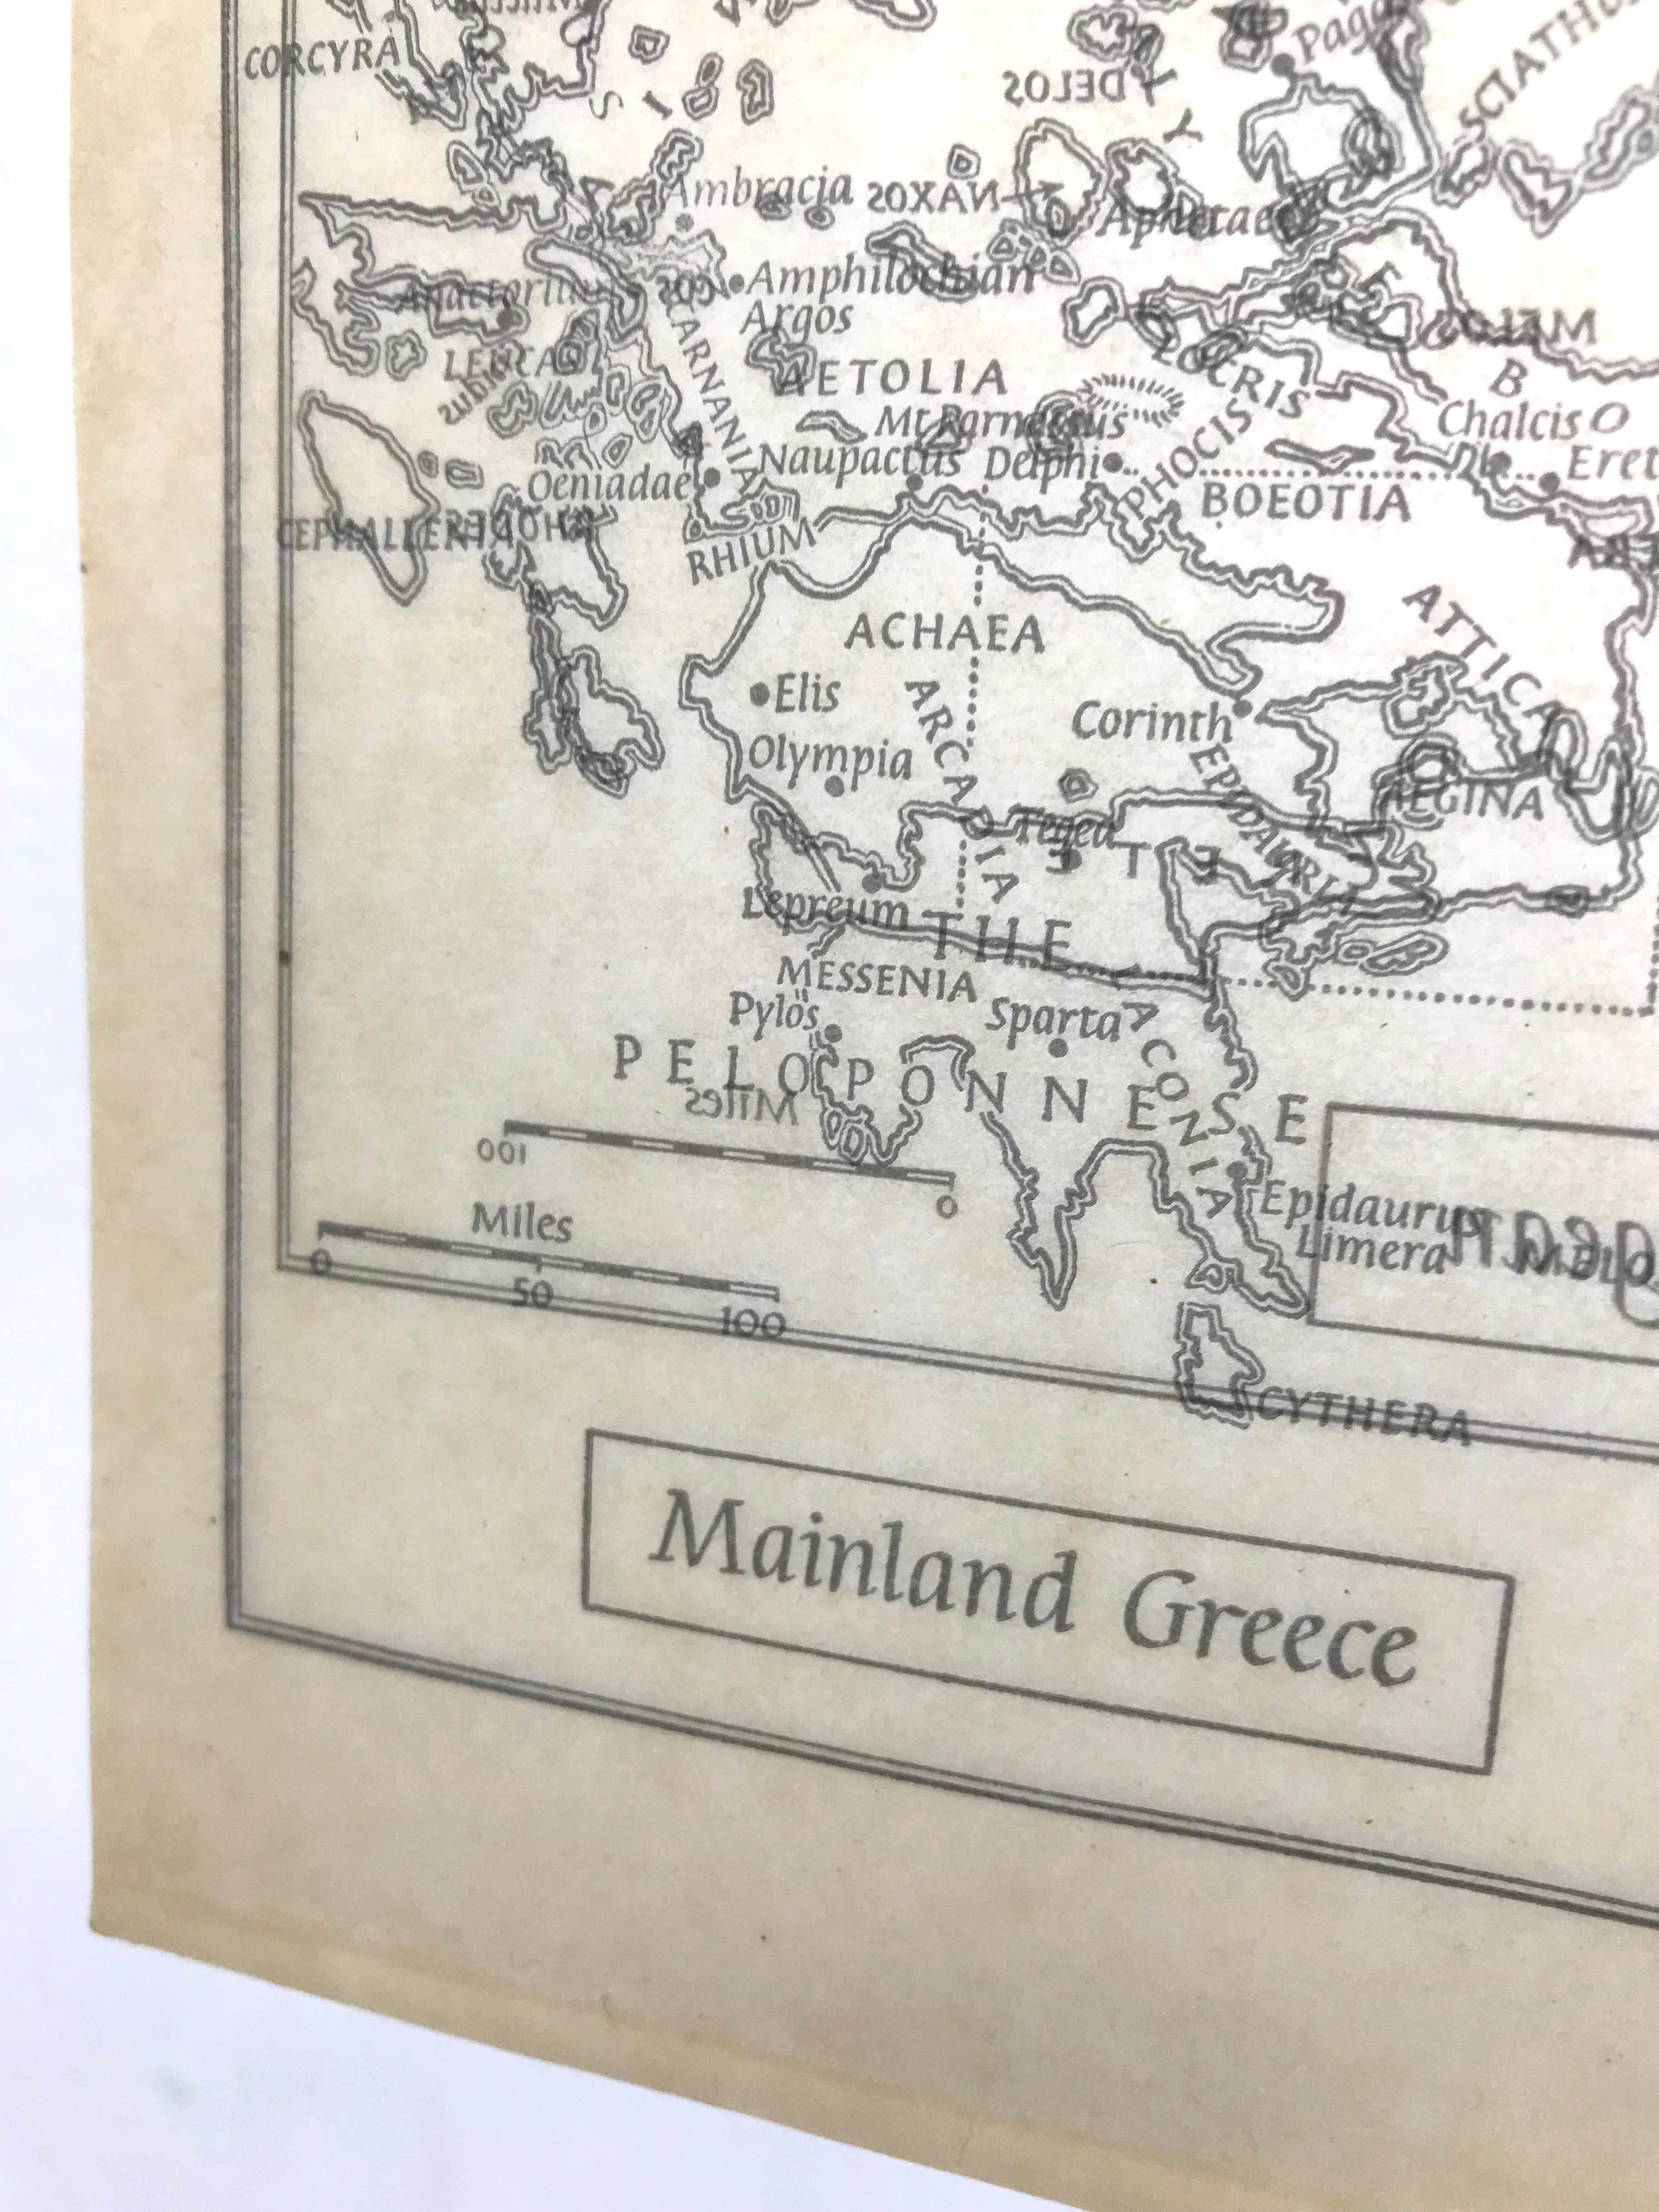 Map I - The Aegean (detail).